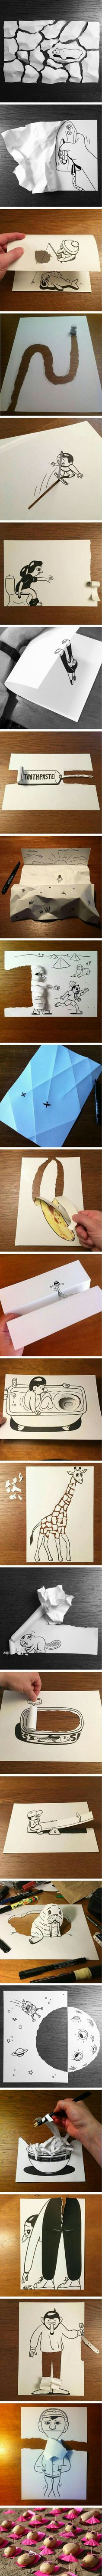 THESE ARE SO CLEVER